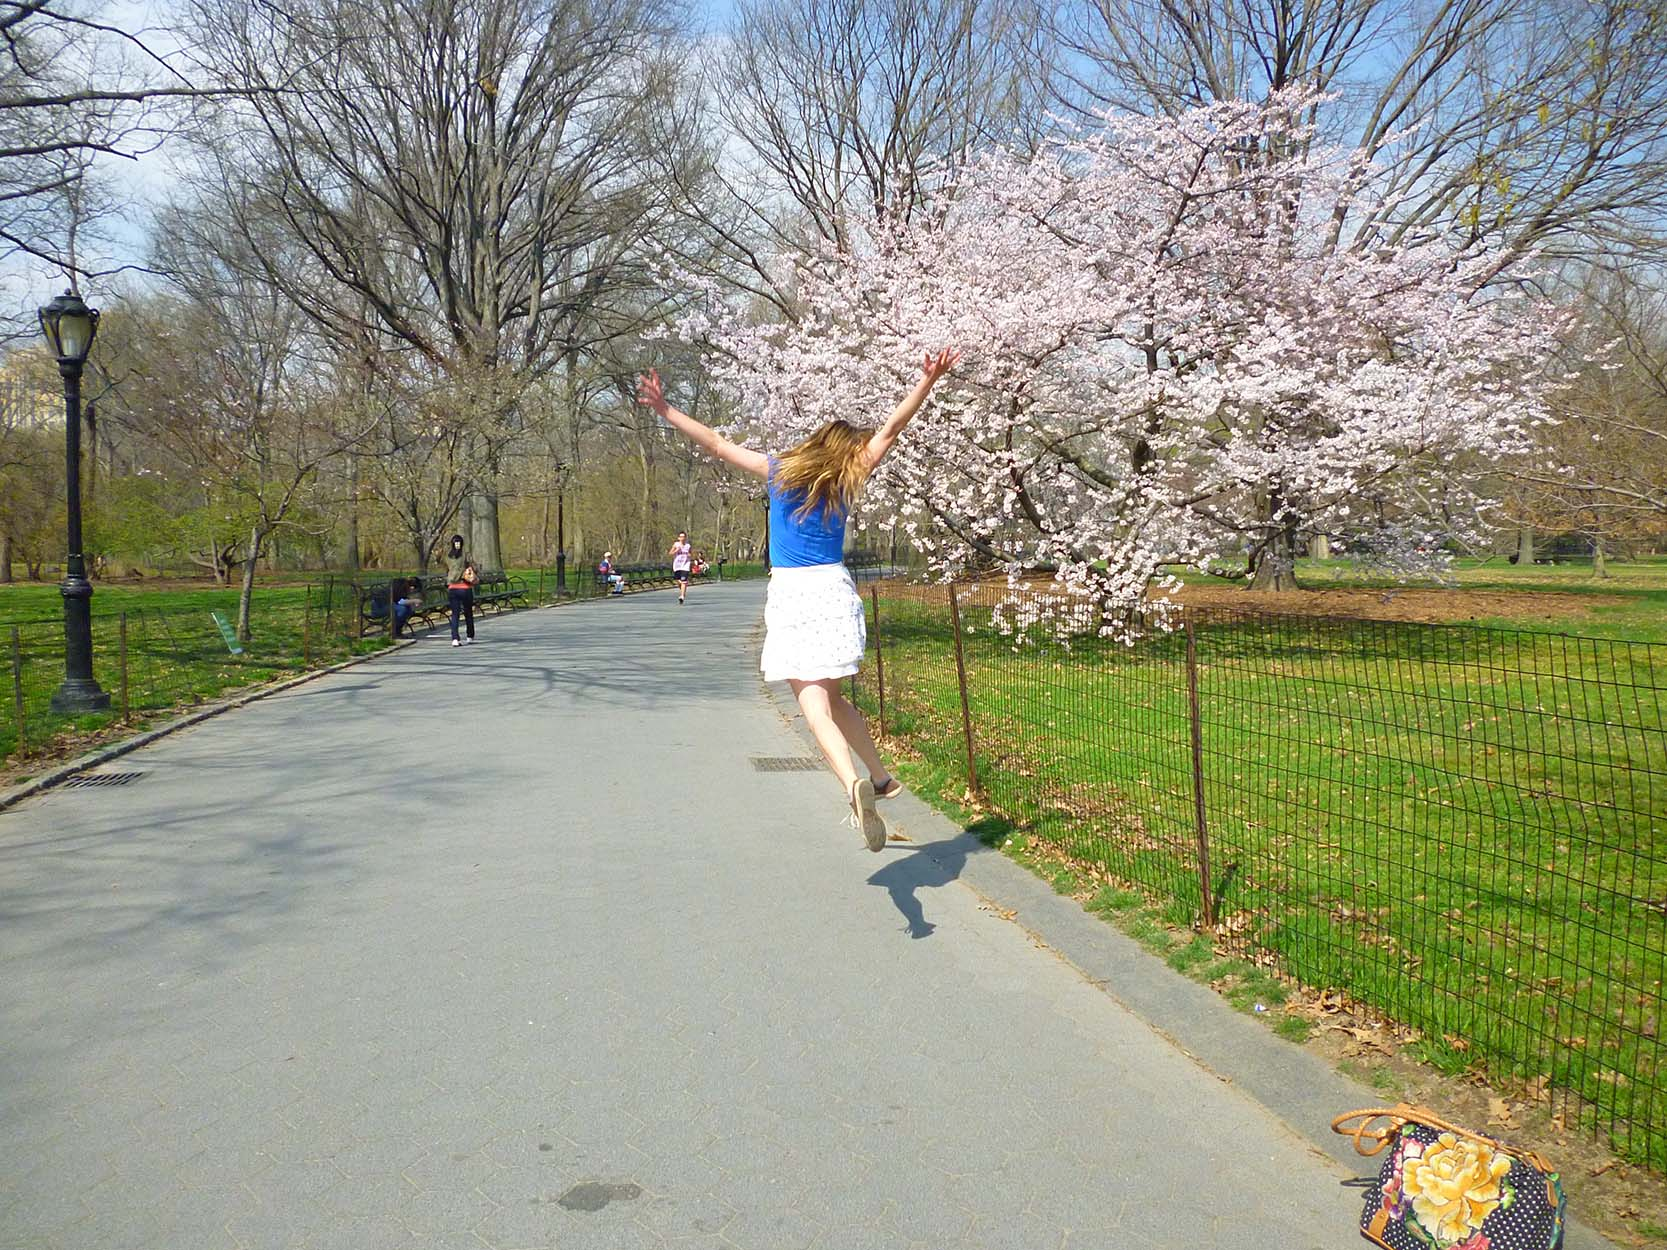 Walks to put Spring in your step